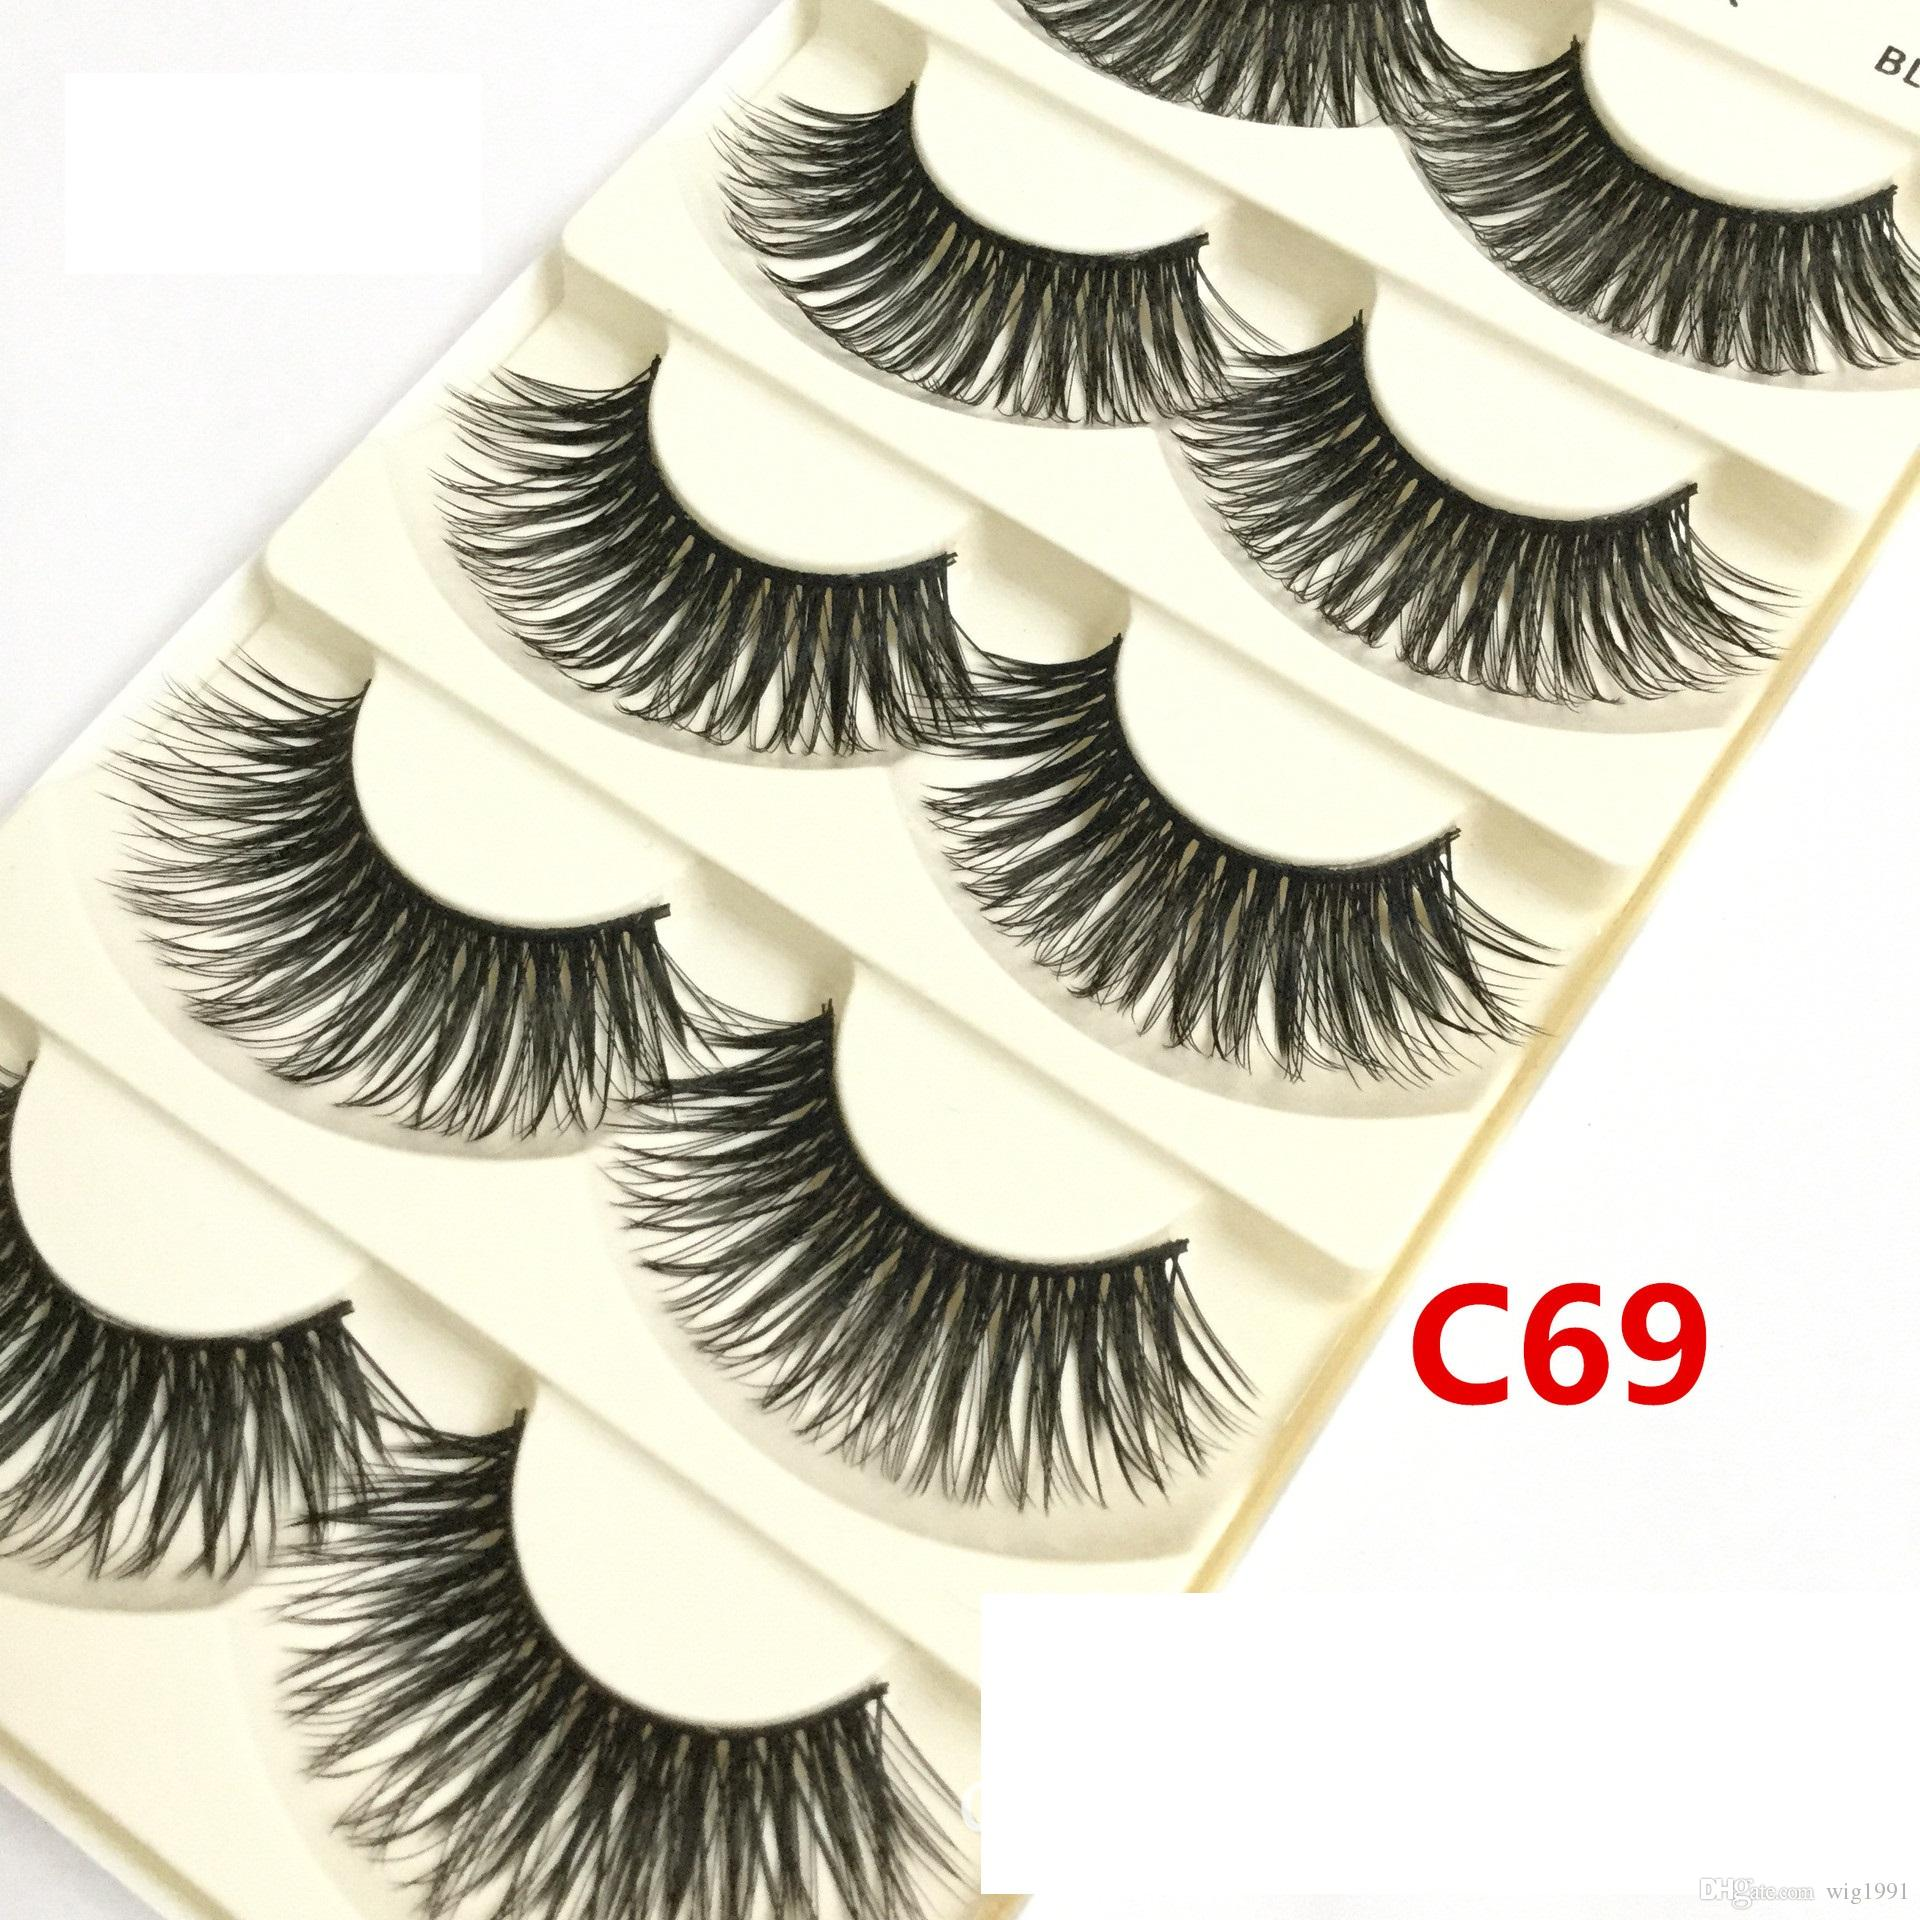 ccfab7311d5 Red Cherry False Eyelashes 26 Styles Black Cross Messy Natural Long Thick  Fake Eye Lashes Beauty Makeup High Quality UK 2019 From Wig1991, ...